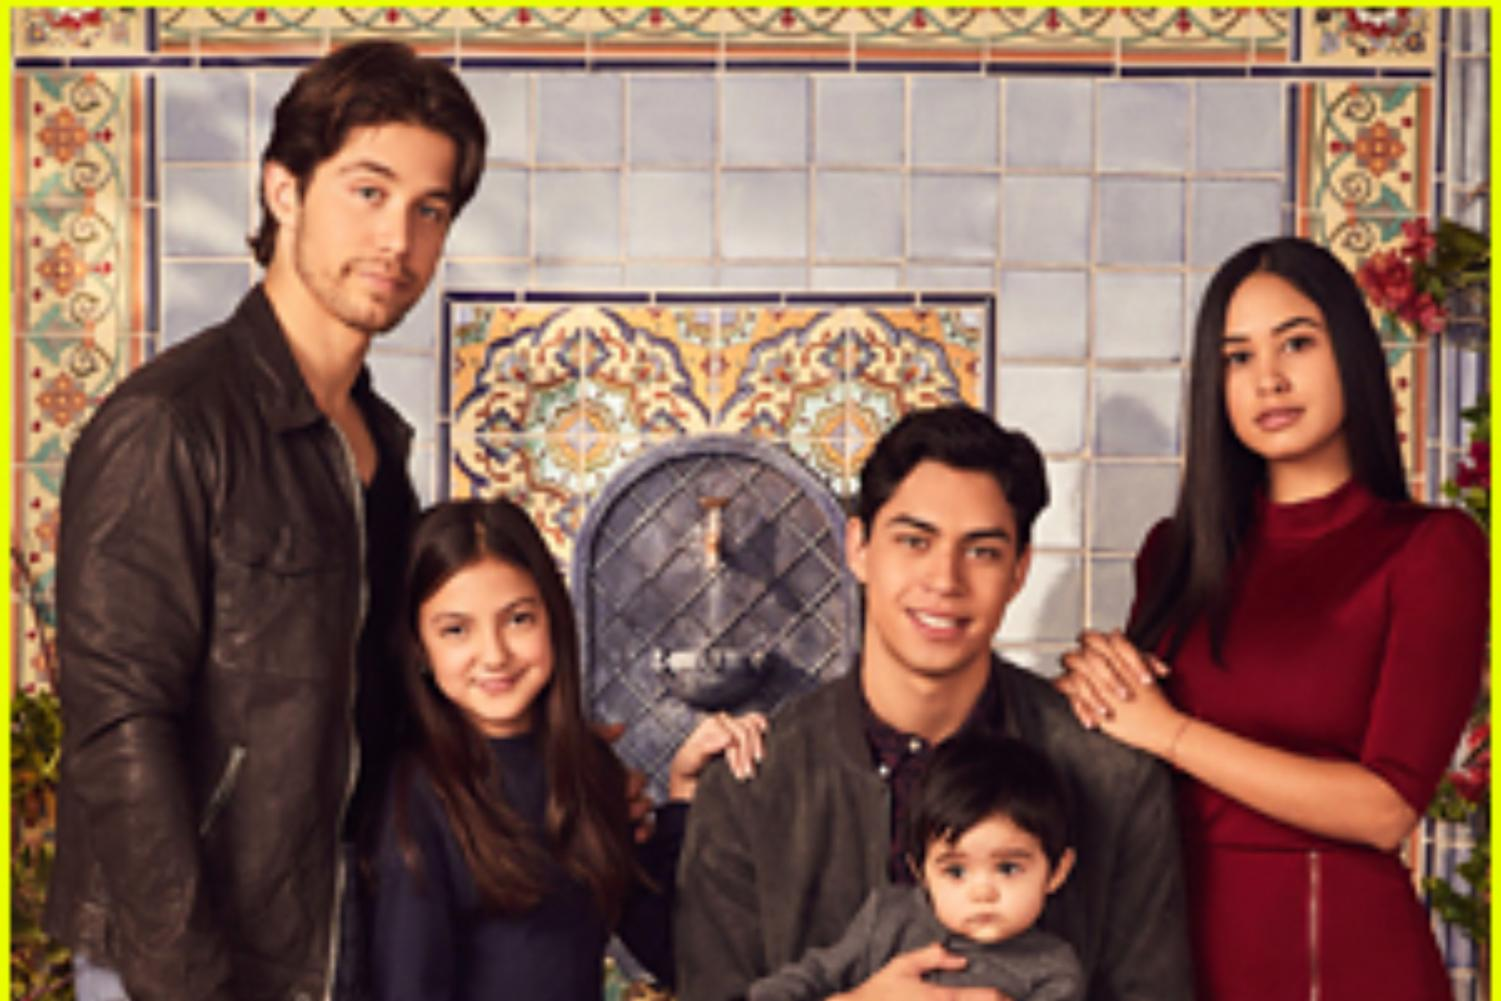 Watch Party of Five on Wednesdays at 9 PM on Freeform.